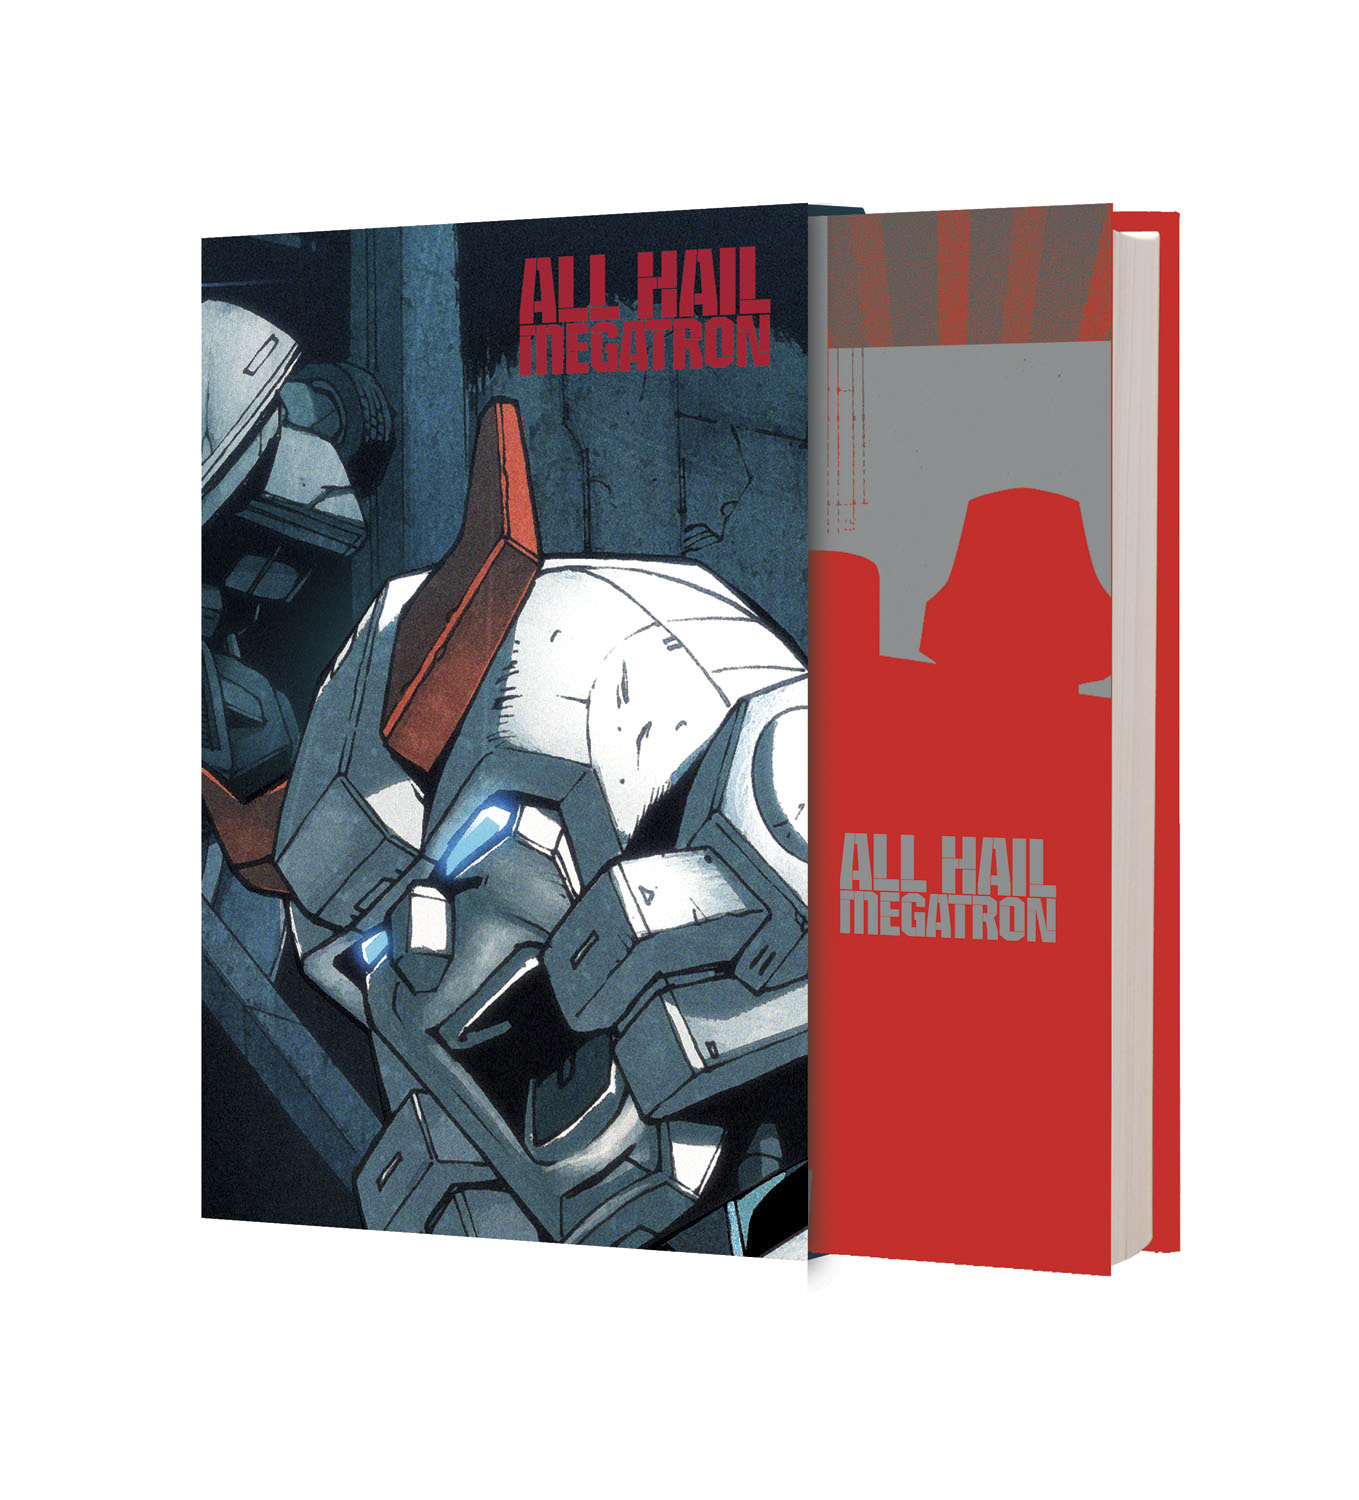 TRANSFORMERS ALL HAIL MEGATRON DLX LTD HC